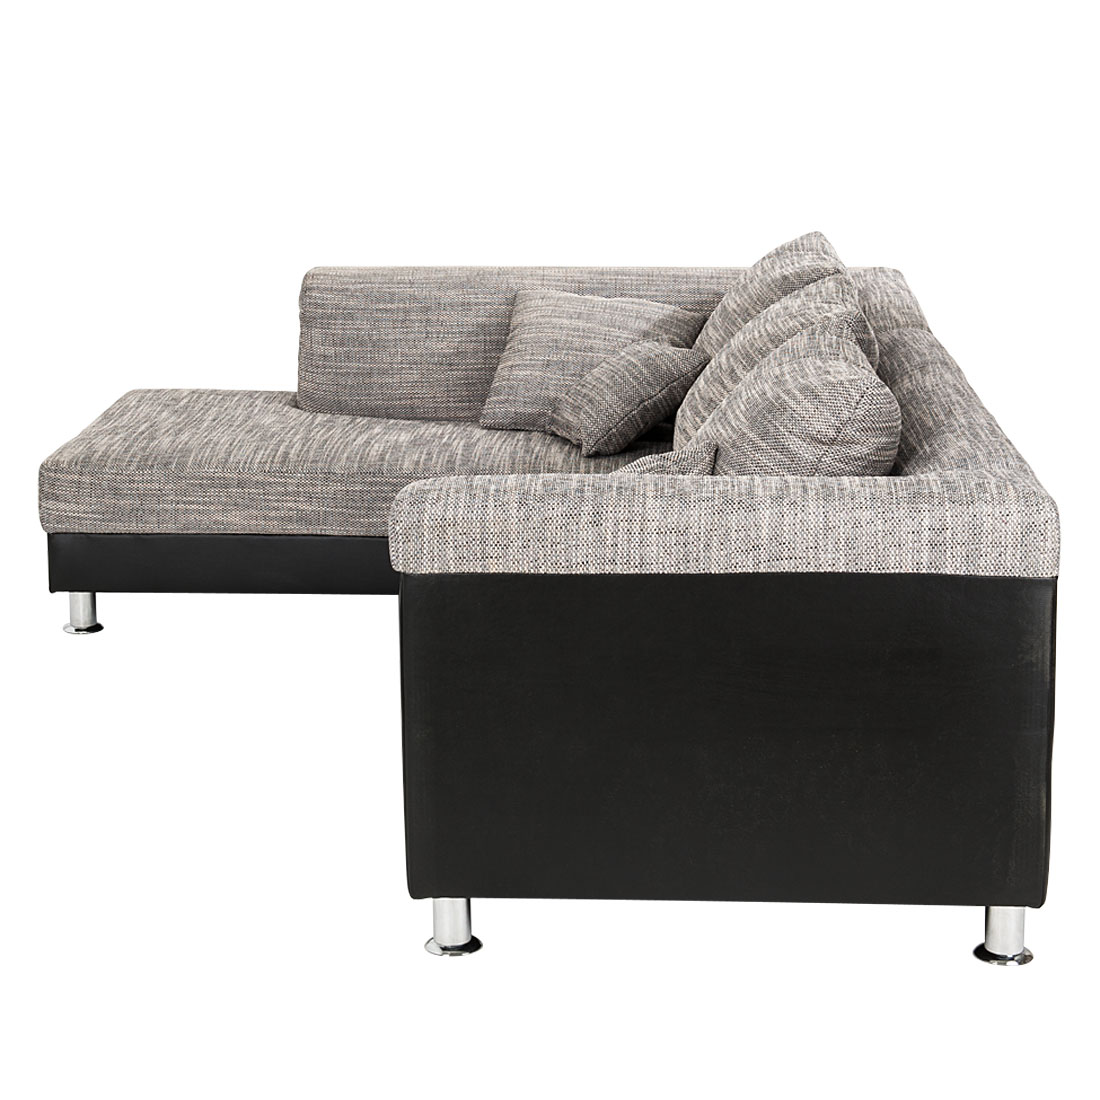 ecksofa stoff schwarz grau ottomane links eckcouch sofa. Black Bedroom Furniture Sets. Home Design Ideas